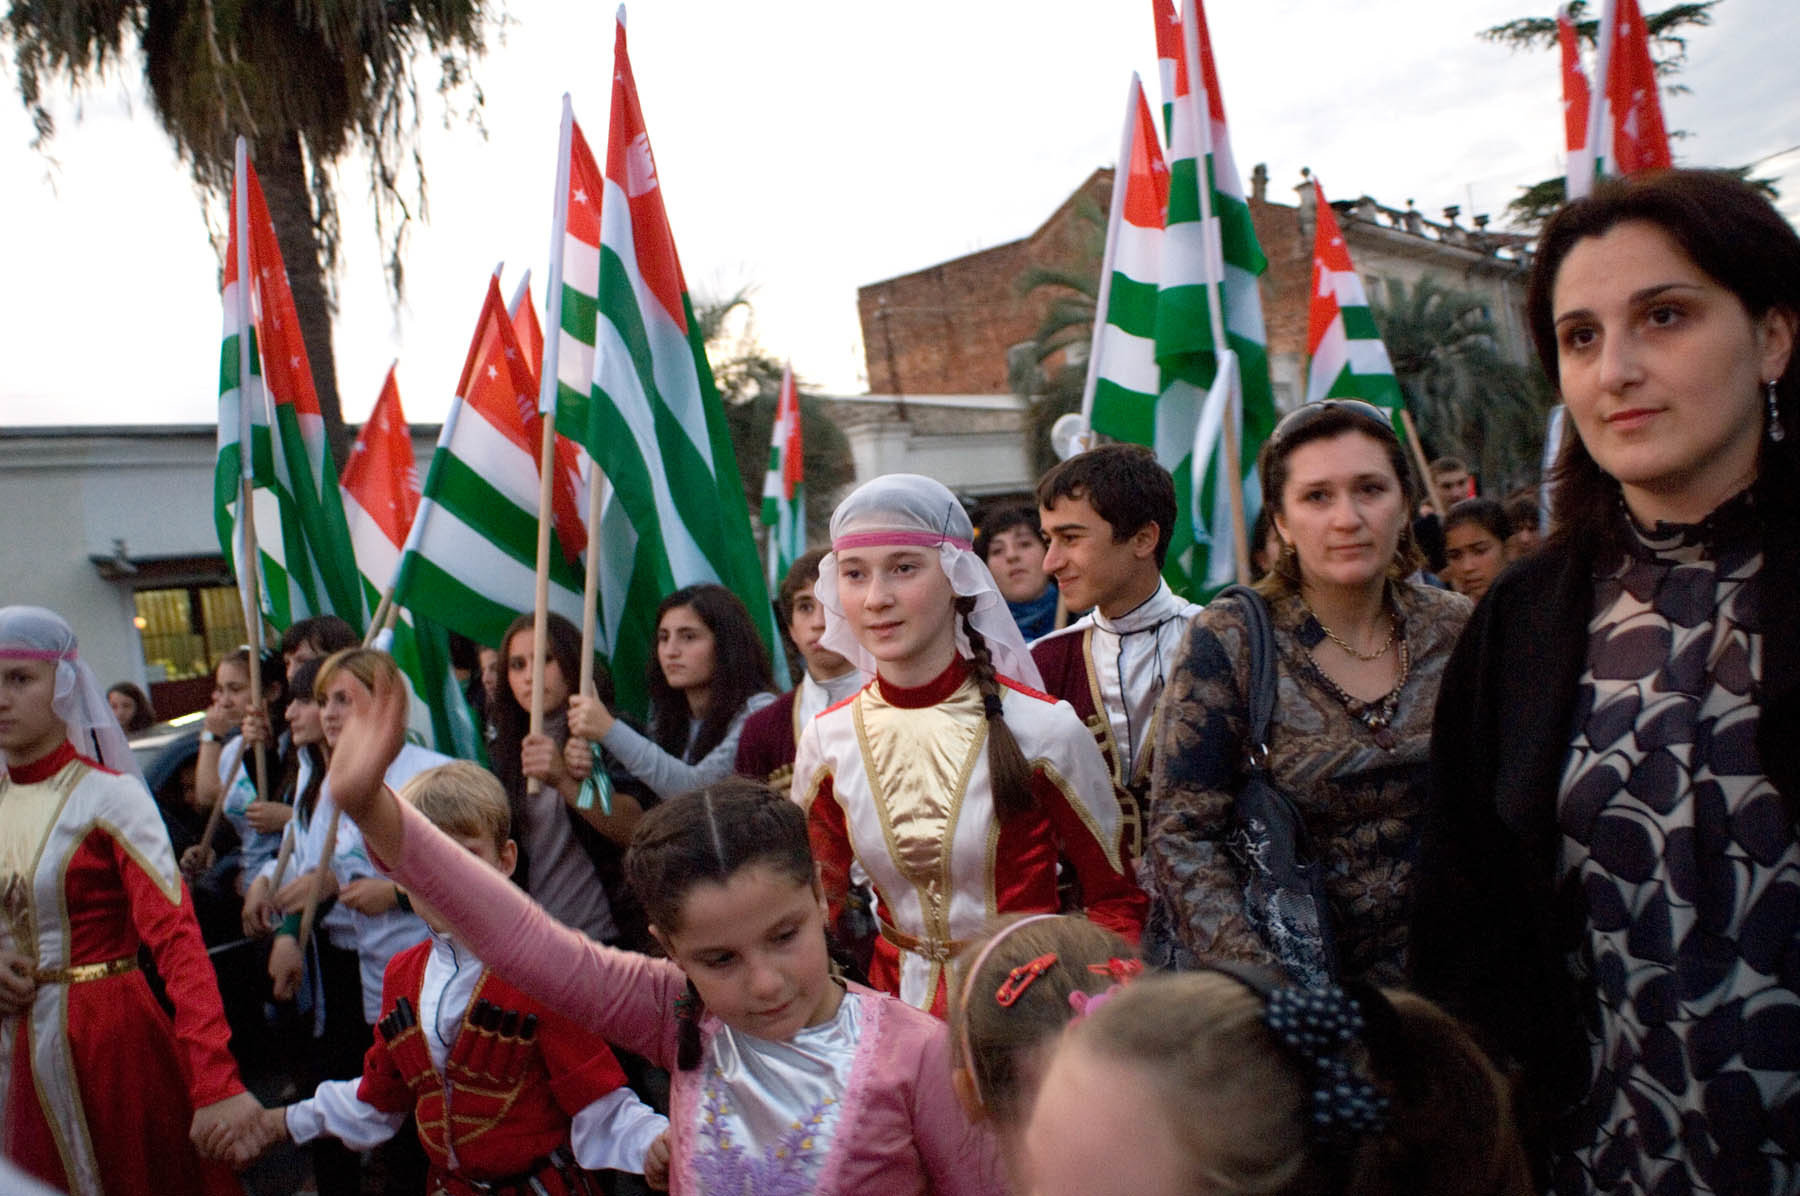 Abkhazian youth participate in celebration and dance honoring the independence of their nation.